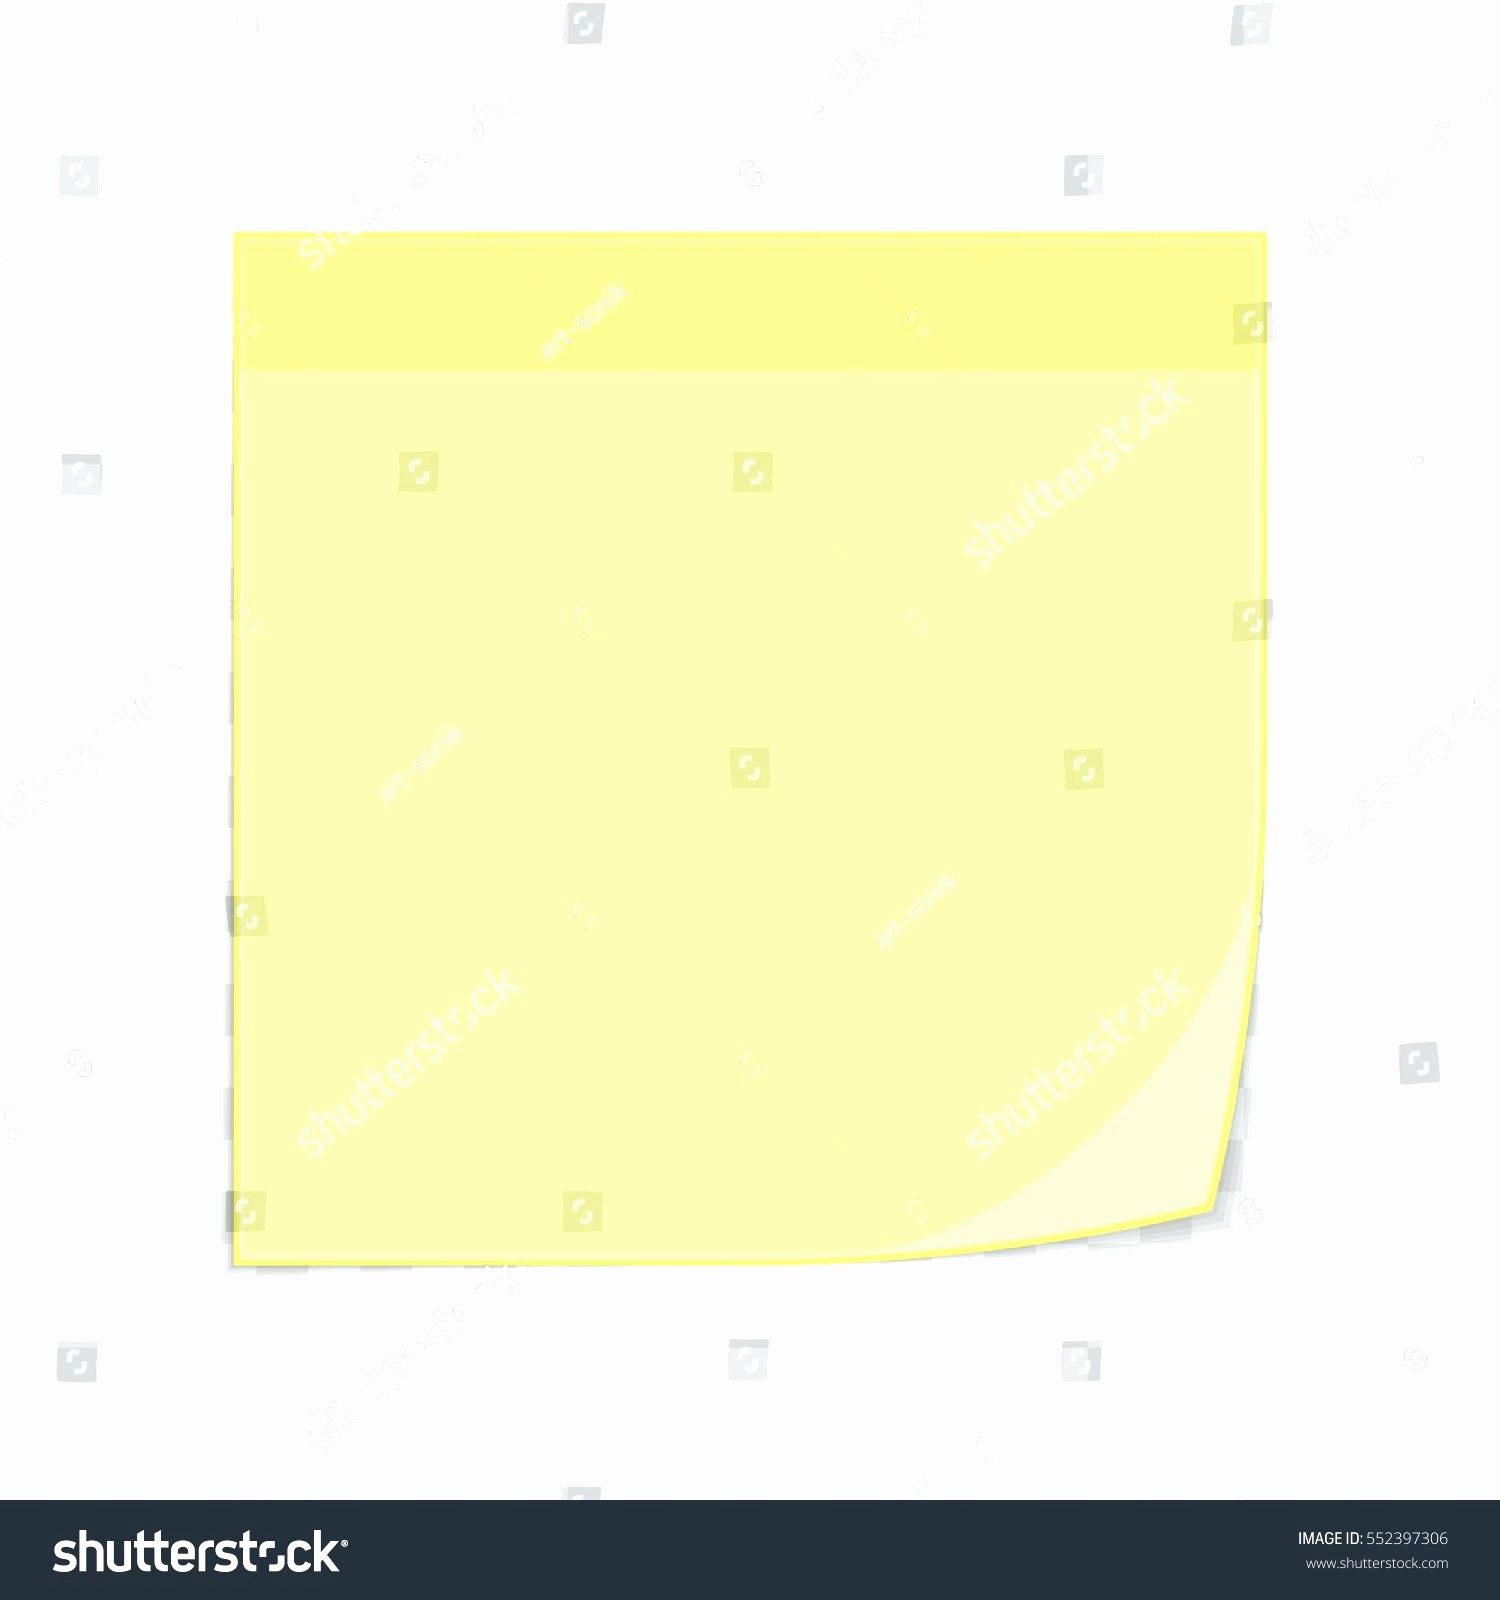 Sticky Note Template for Word Unique Template Sticky Note Template